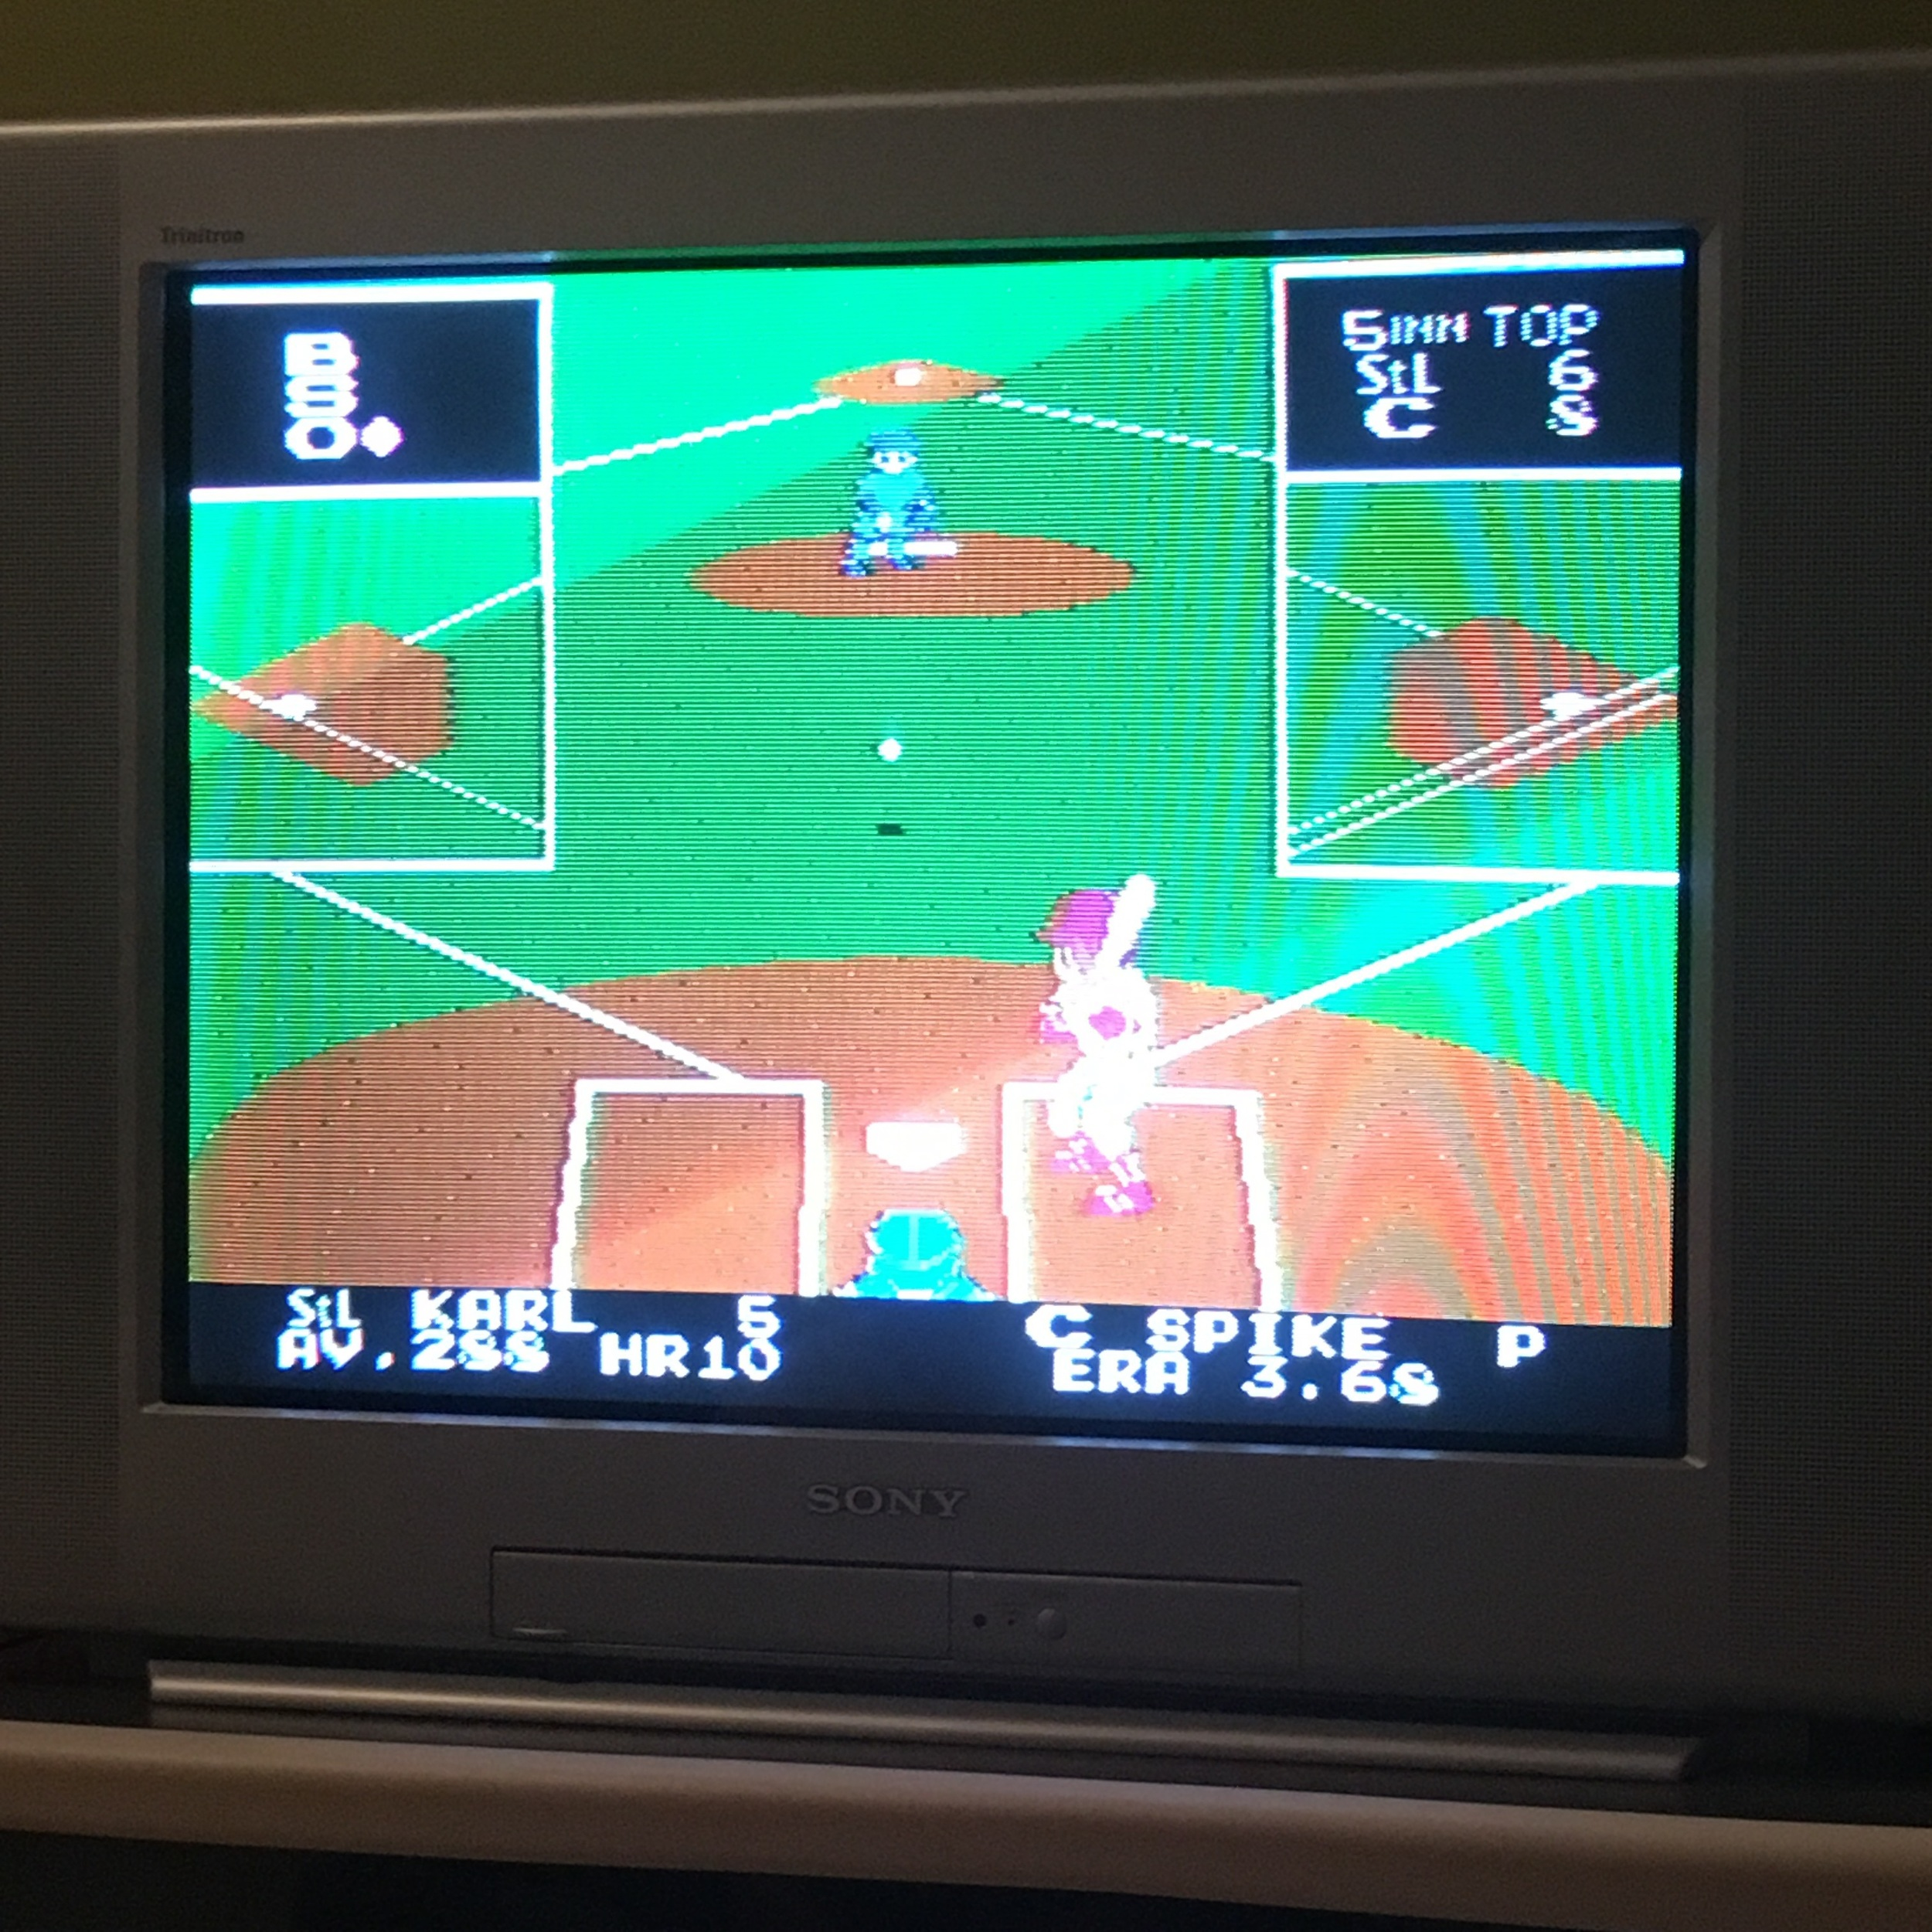 Classic matchup -- Cards v Cubs